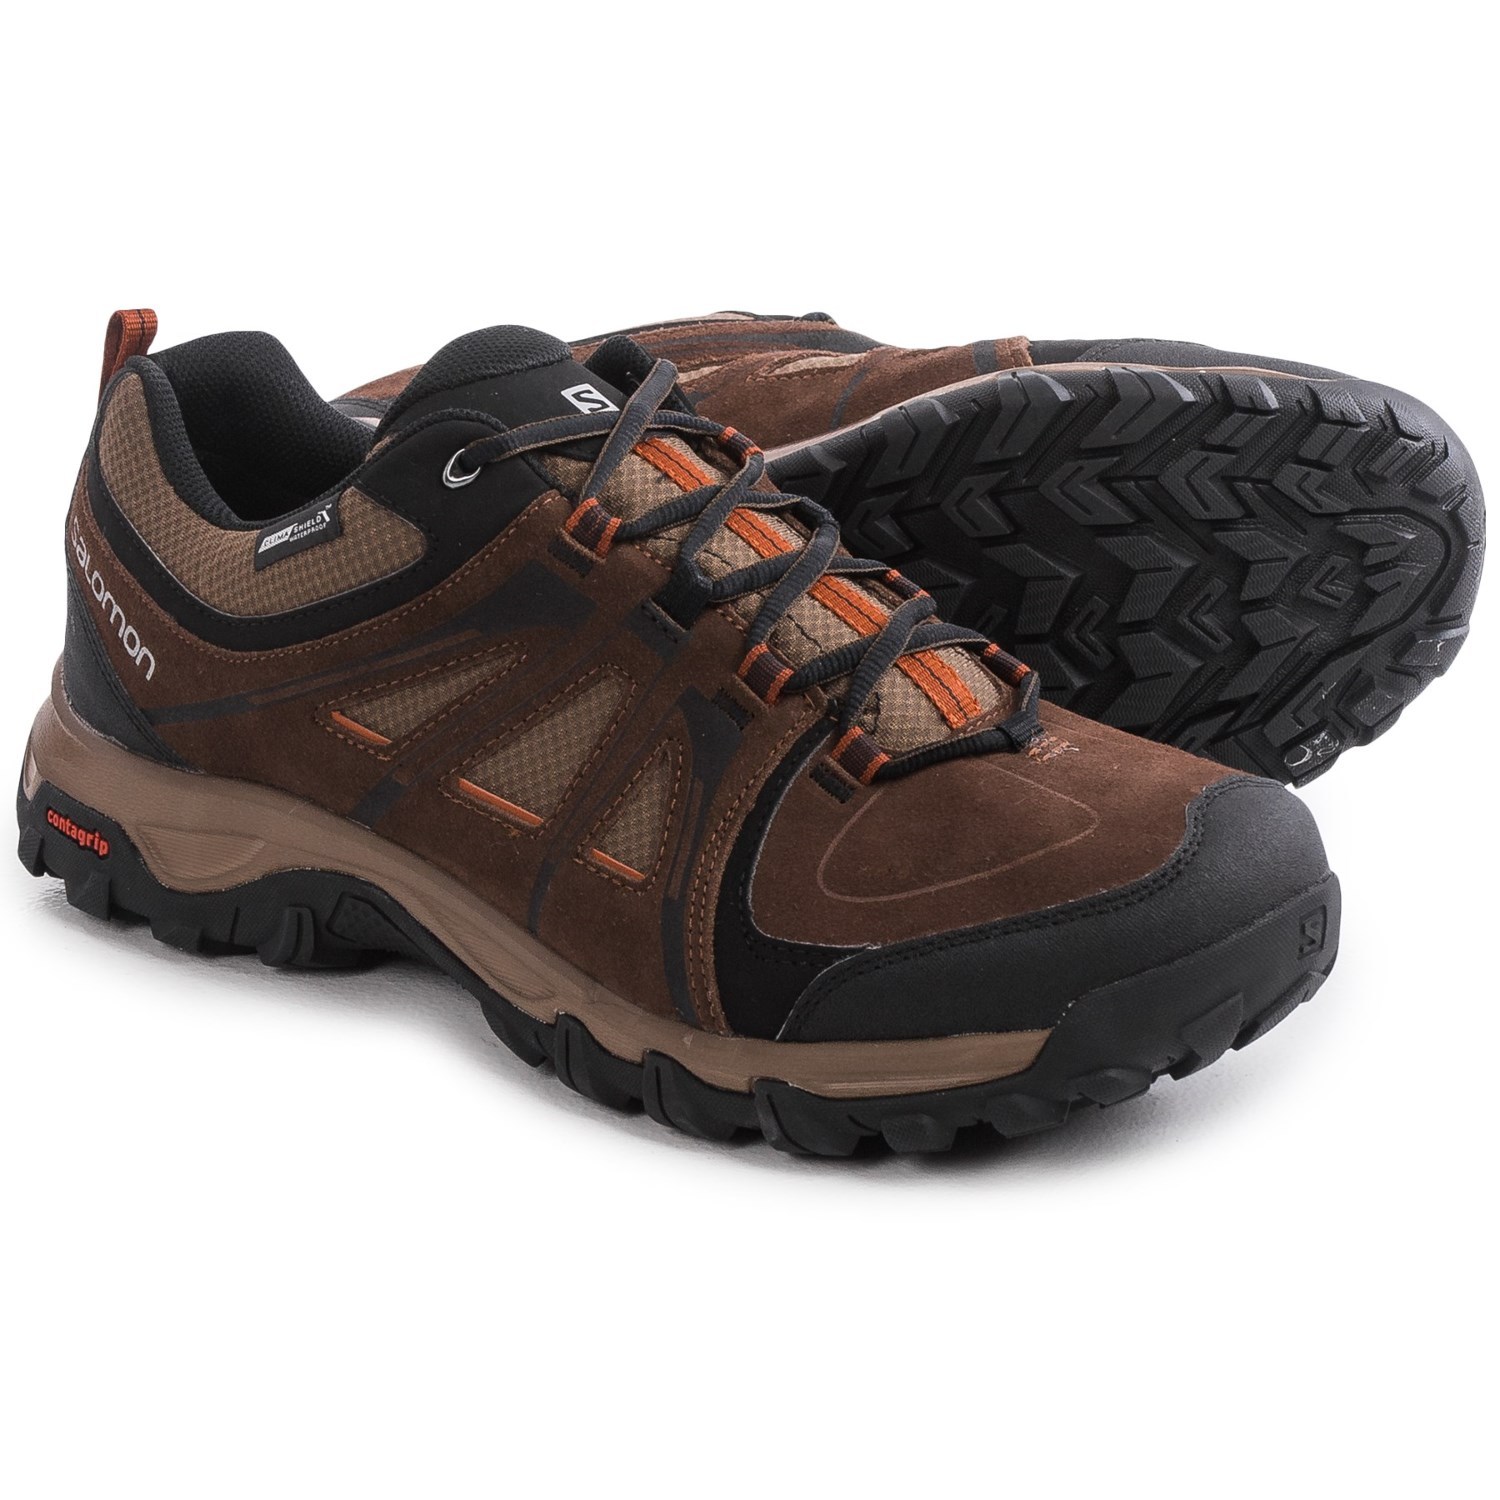 839c5580e9c0 Buy salomon climashield   Up to OFF70% Discounted